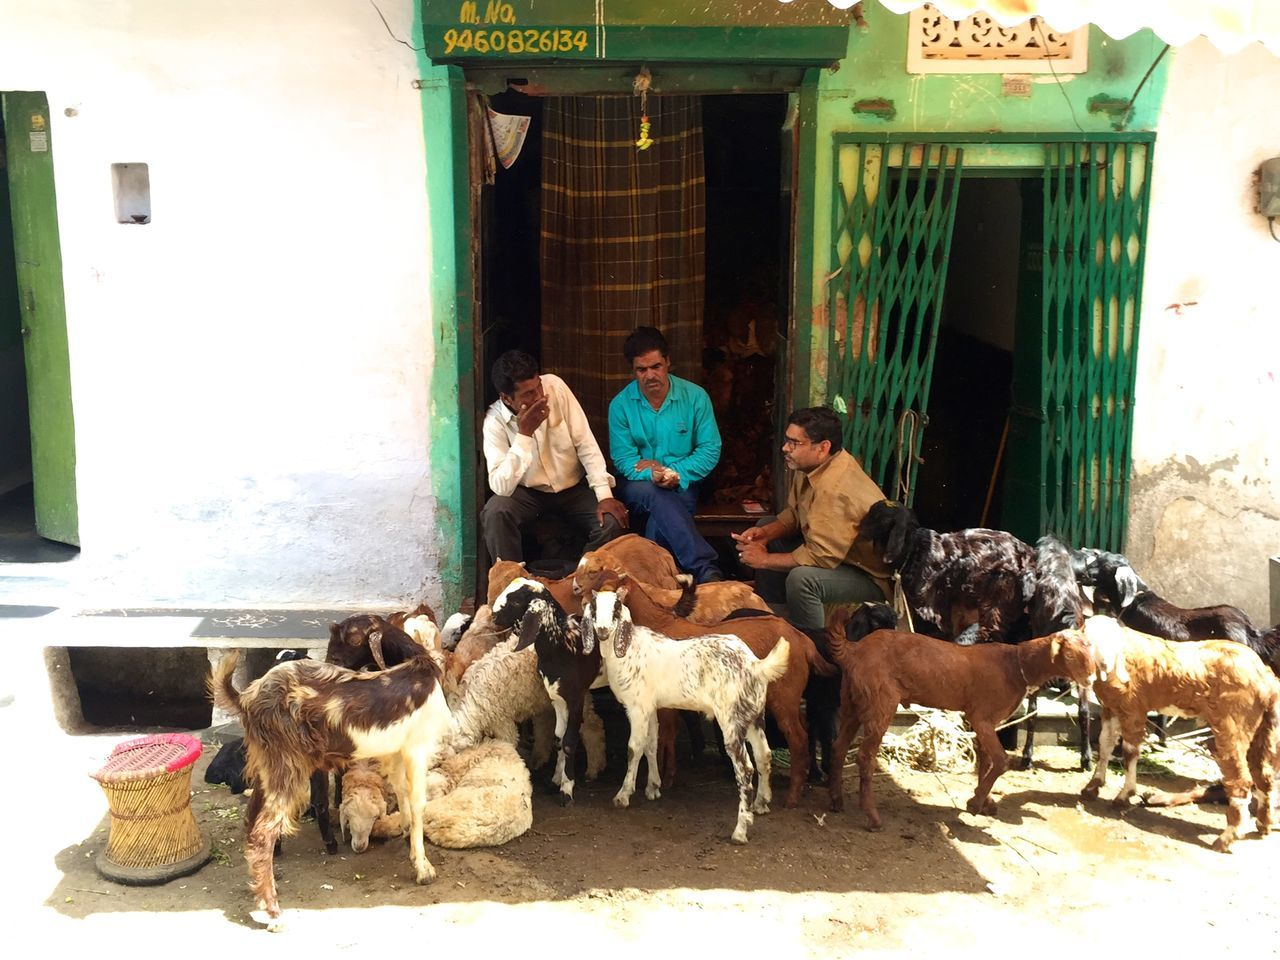 domestic animals, mammal, livestock, real people, built structure, architecture, men, togetherness, day, building exterior, outdoors, pets, dog, sitting, full length, large group of animals, sunlight, sheep, people